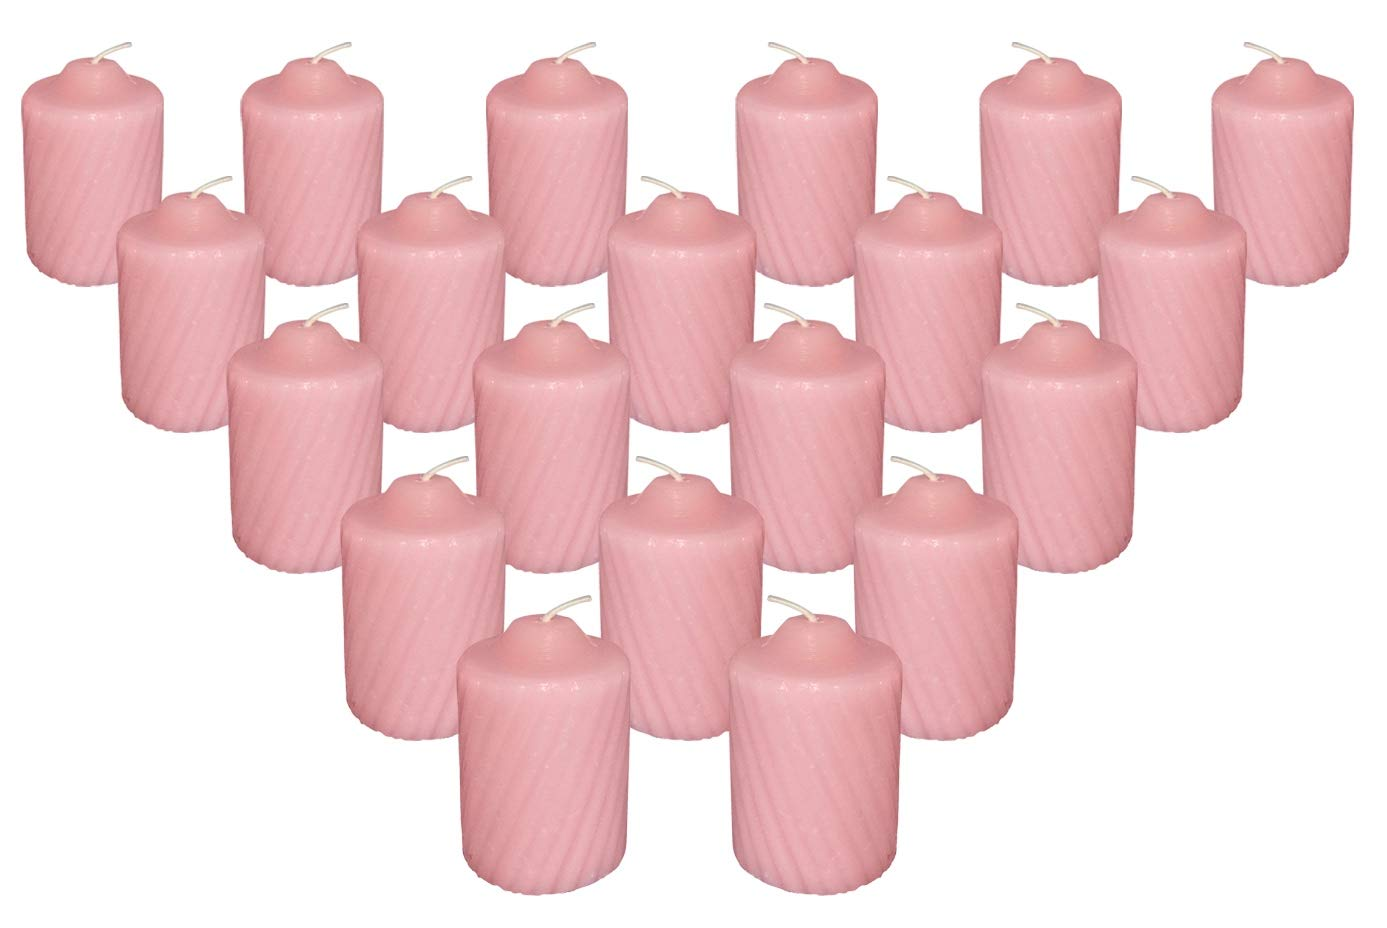 15 Hour Scented Votive Candles 20 Candles Per Box with Texured Finish (Pink Wild Flower Scent)